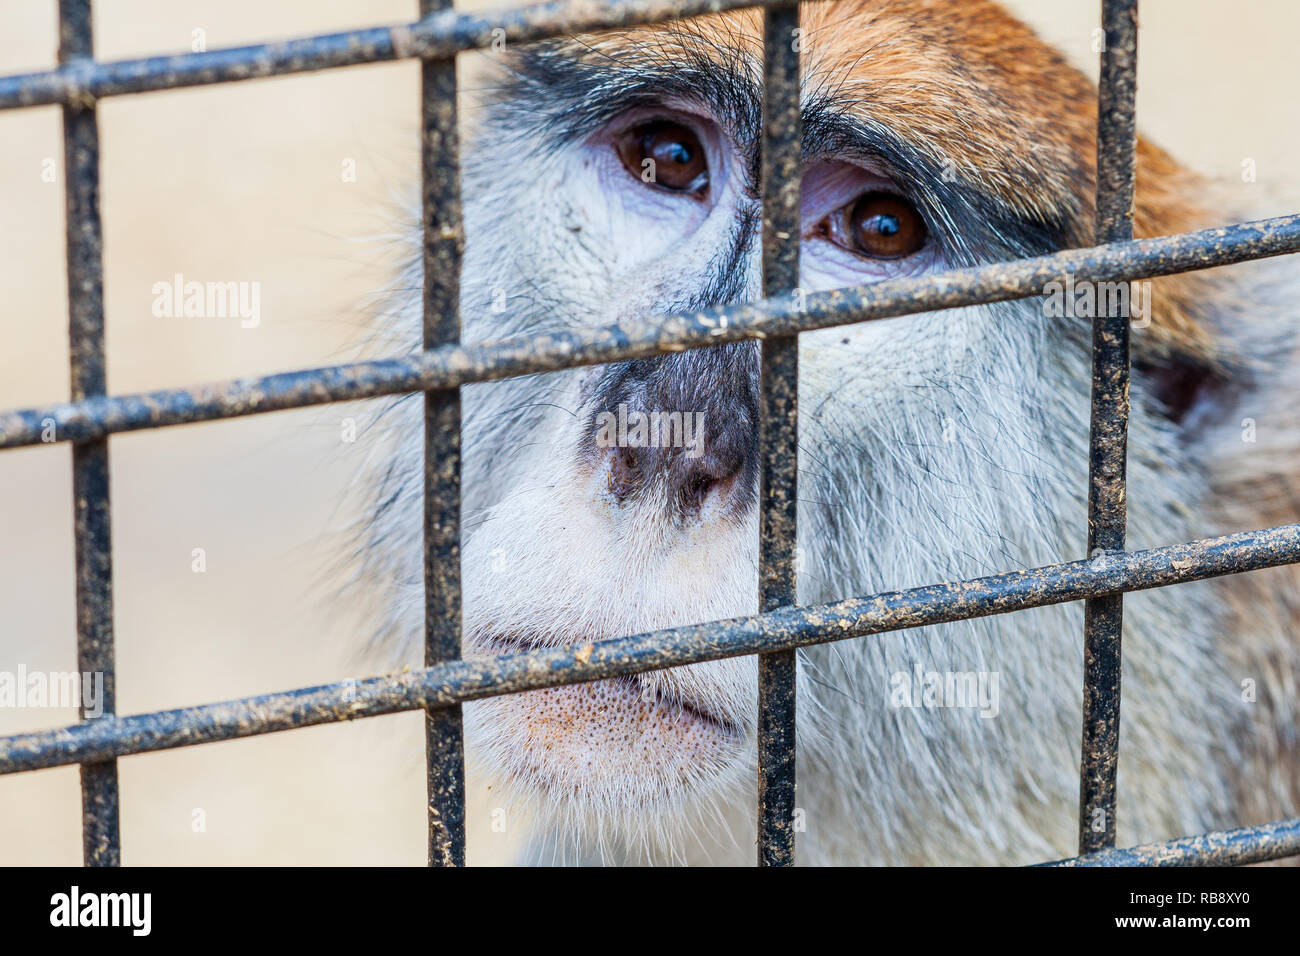 A portrait of a sad captive monkey looking yearningly thorough metal cage - Stock Image